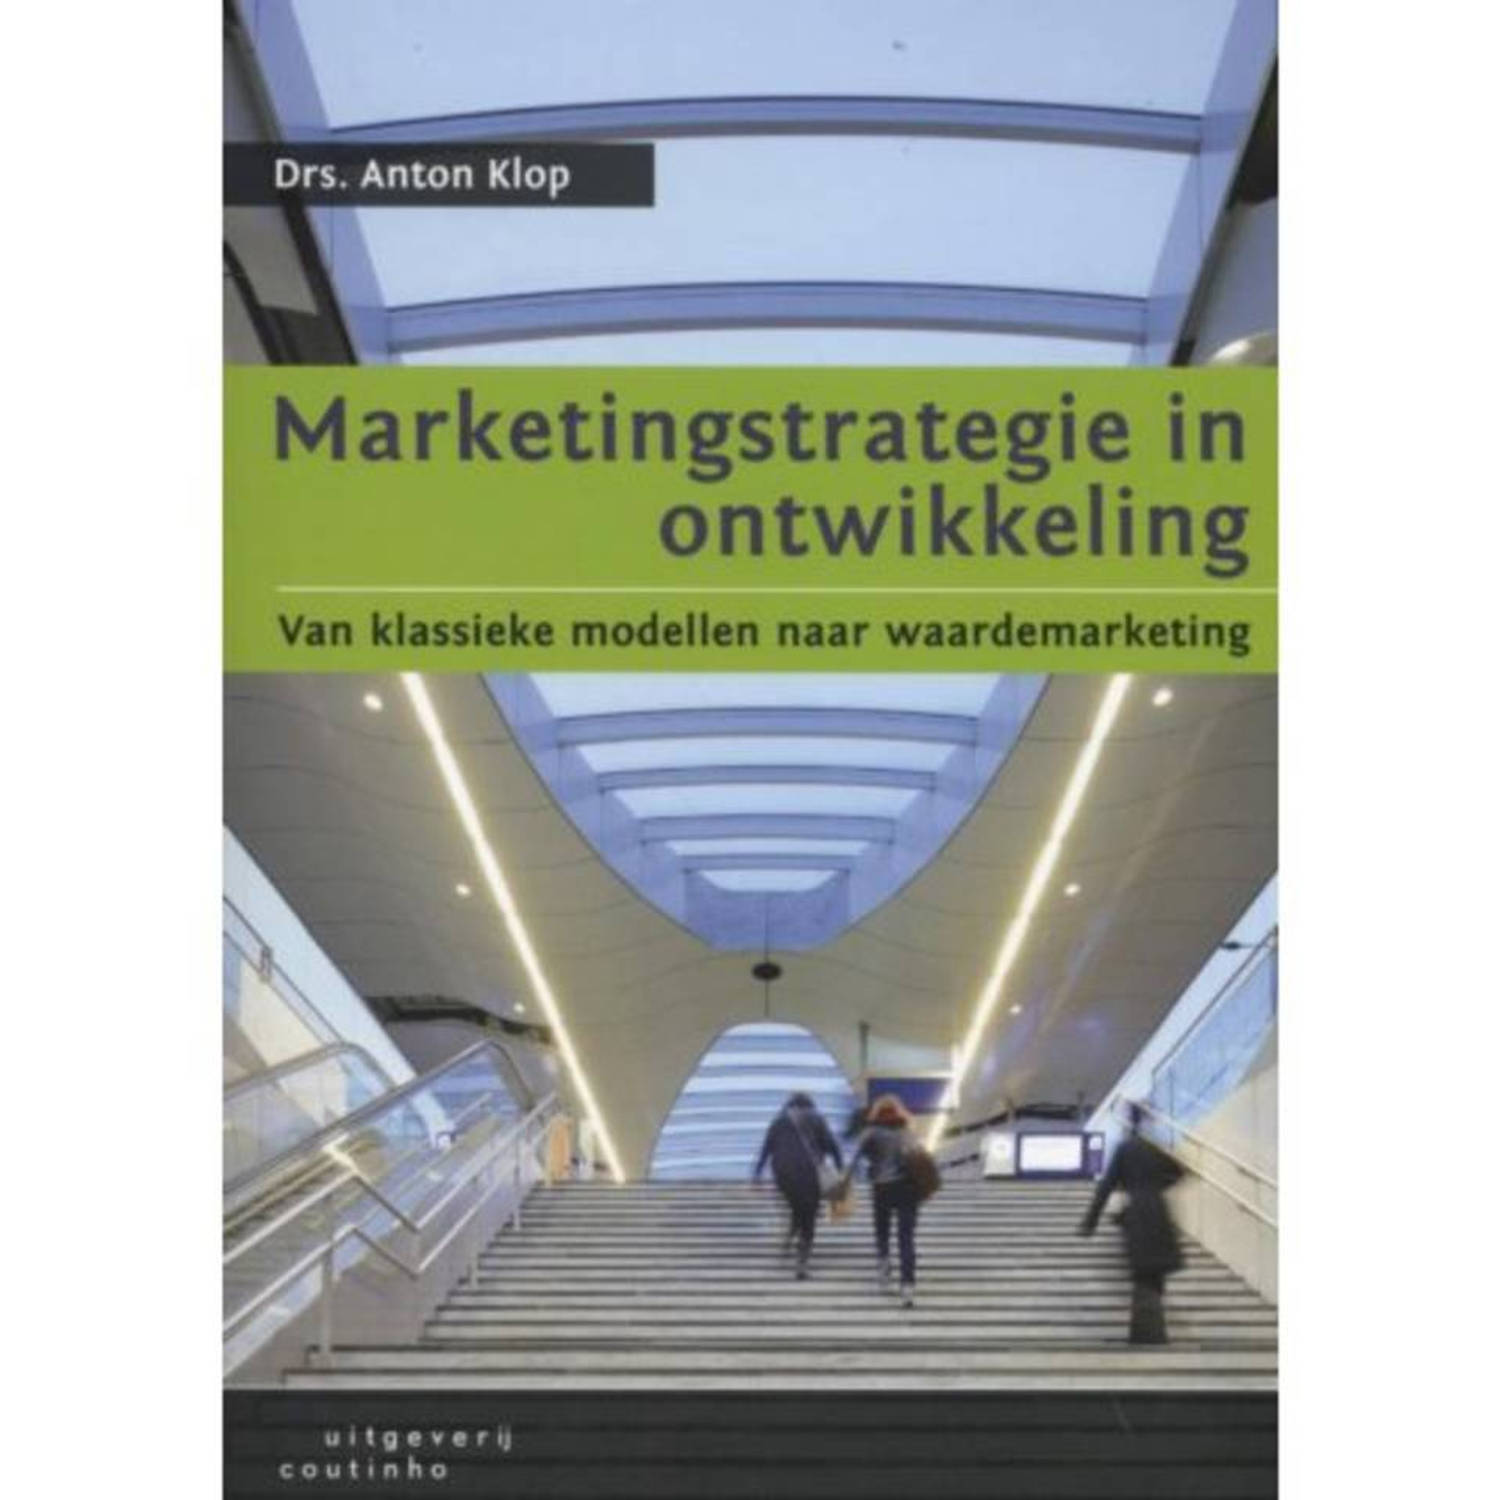 Marketingstrategie in ontwikkeling